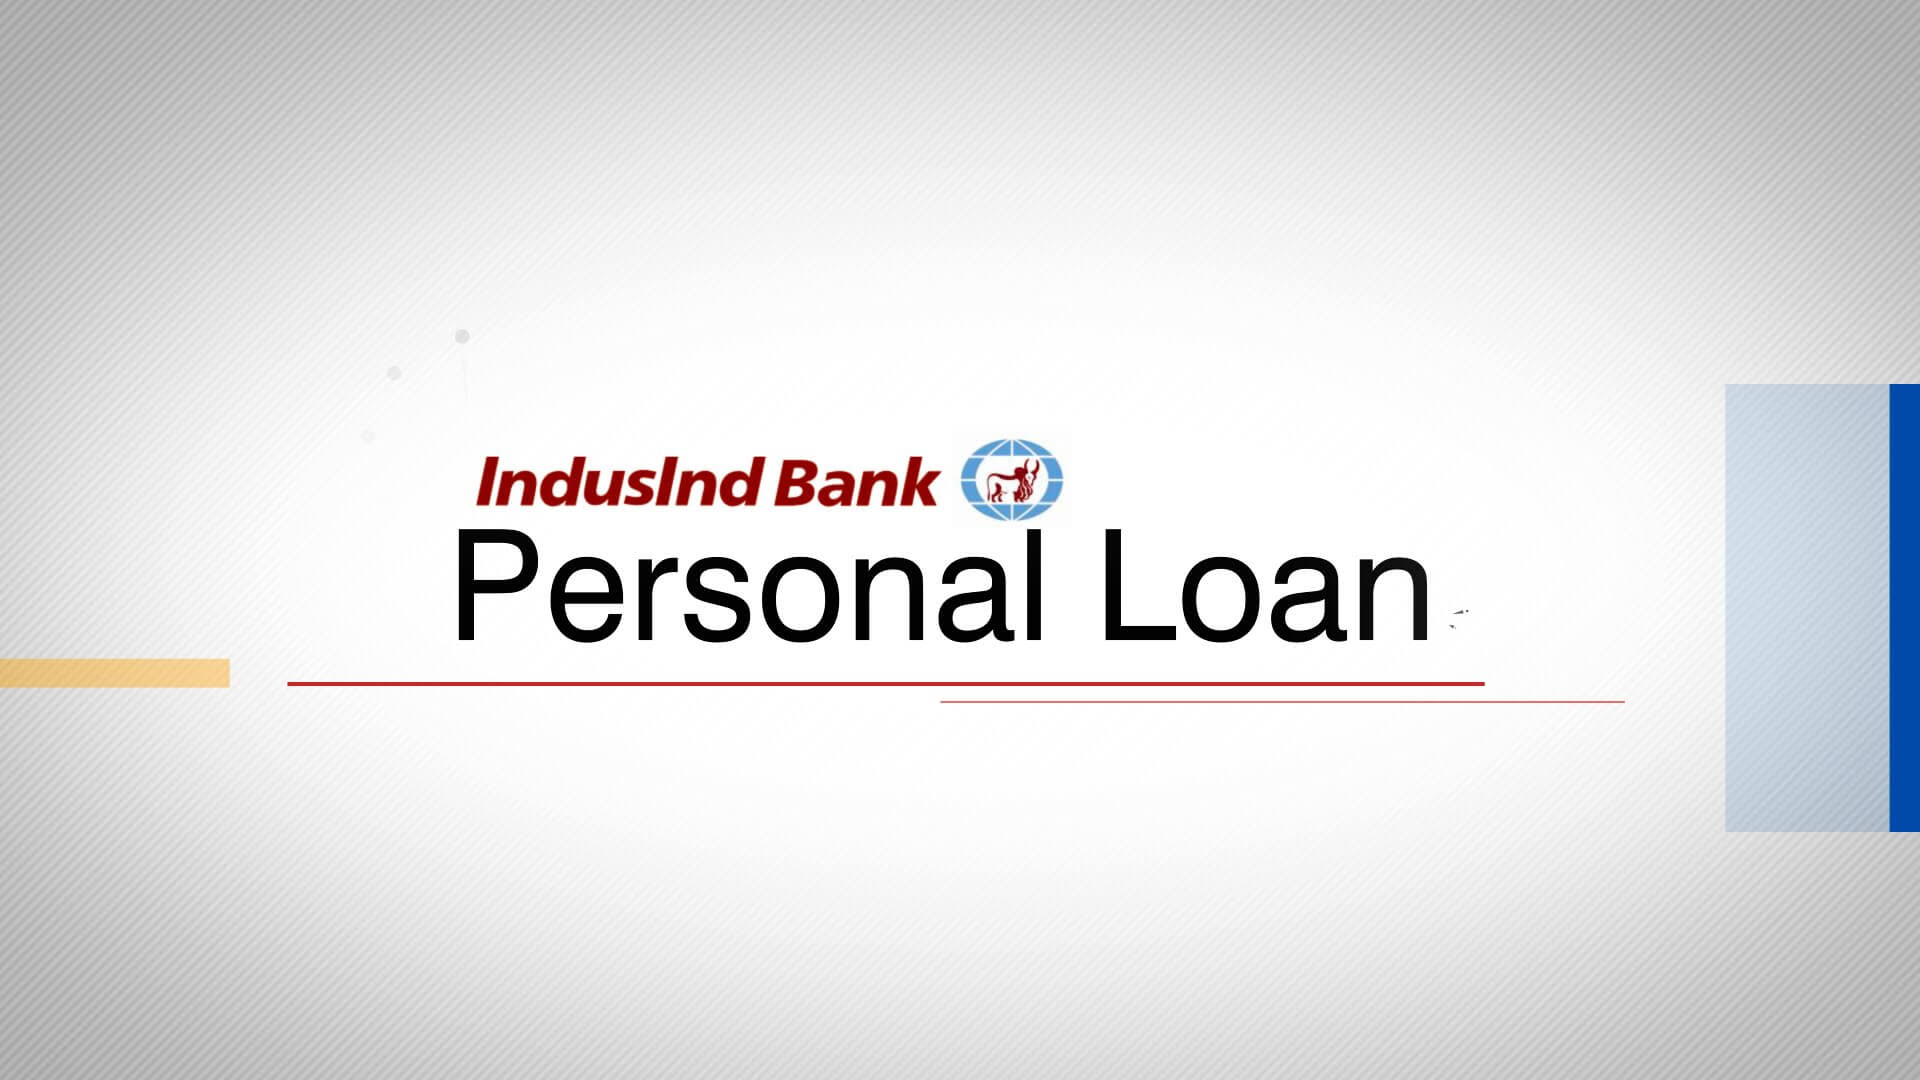 Best & Lowest Interest Rate IndusInd Bank Personal Loan India, Delhi/NCR, Noida 2018